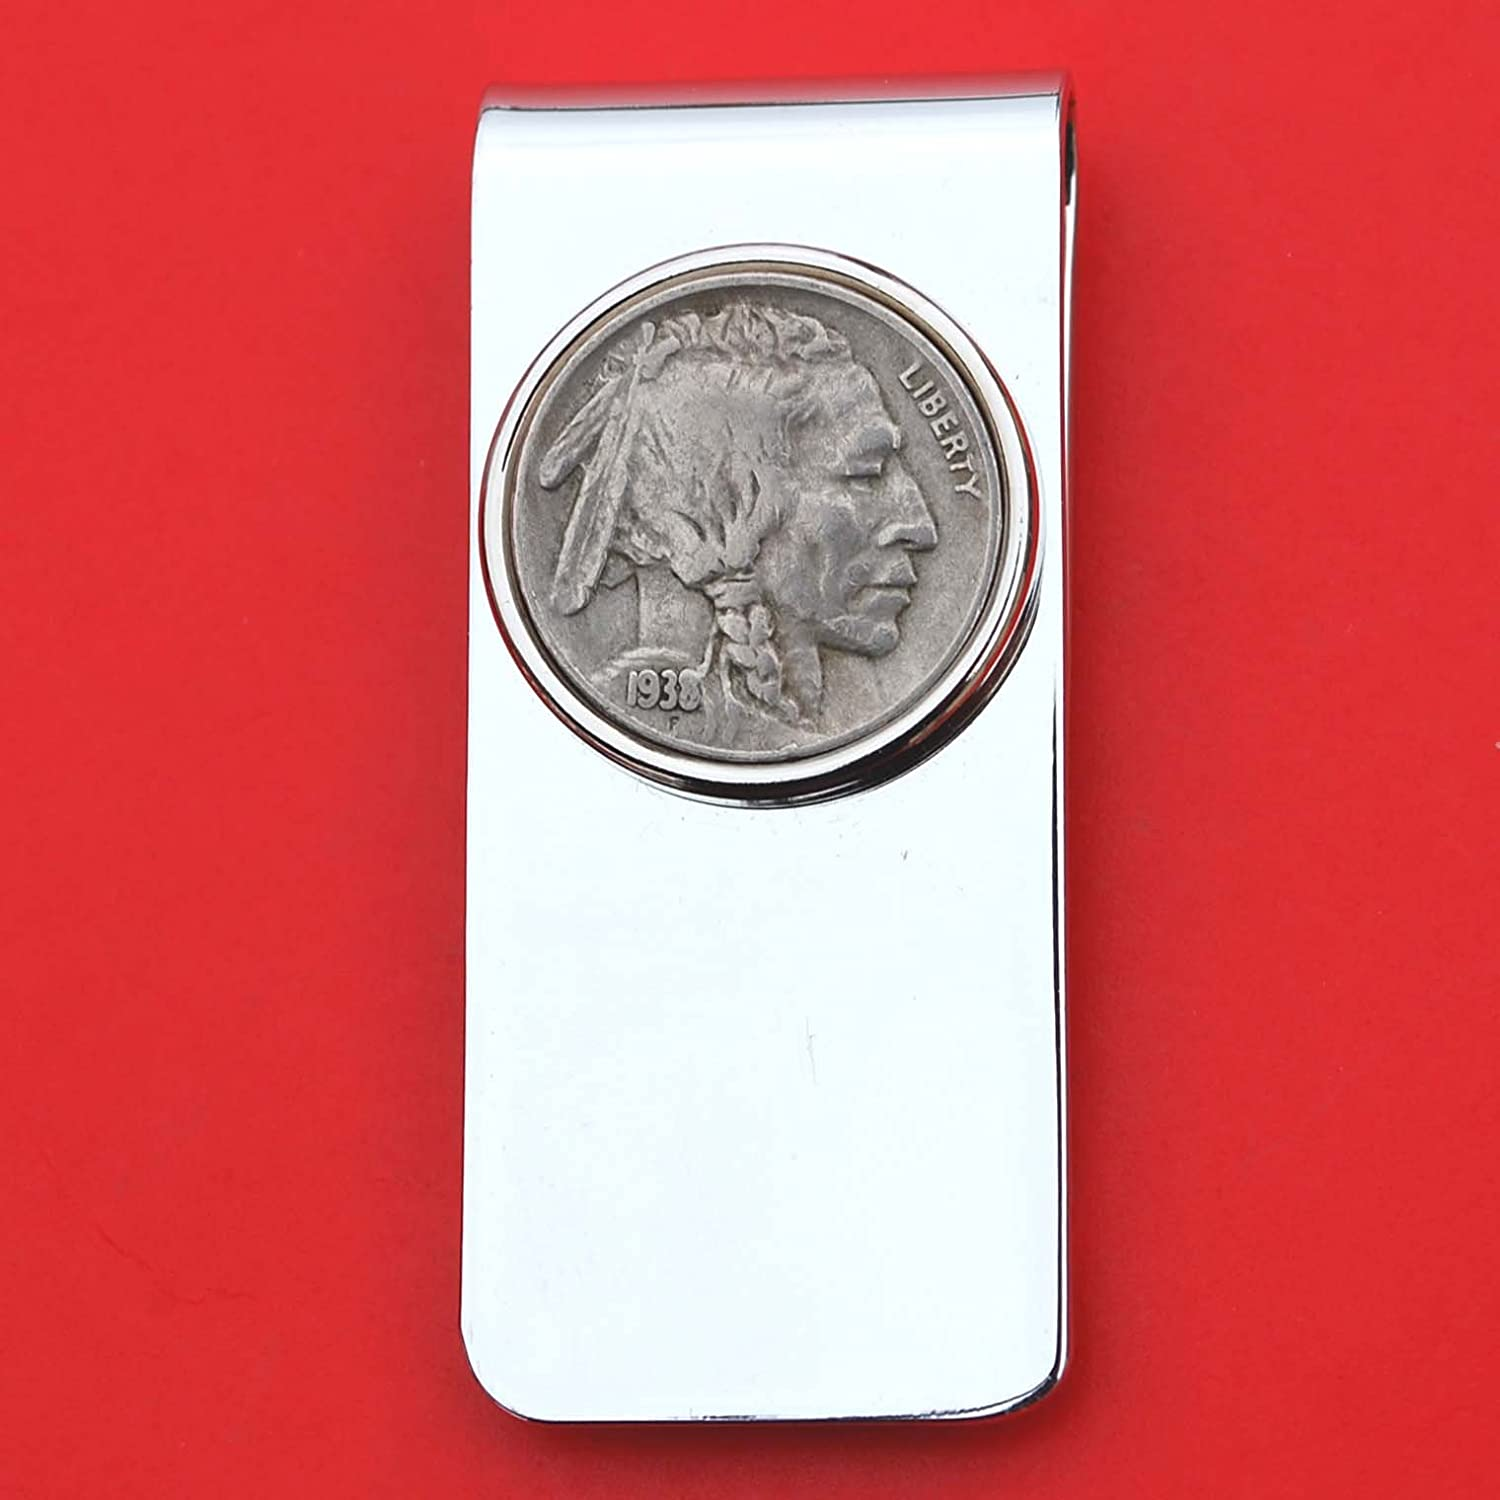 US 1938 Indian Head Buffalo Nickel 5 Cent Coin Solid Brass Silver Money Clip New - High Quality